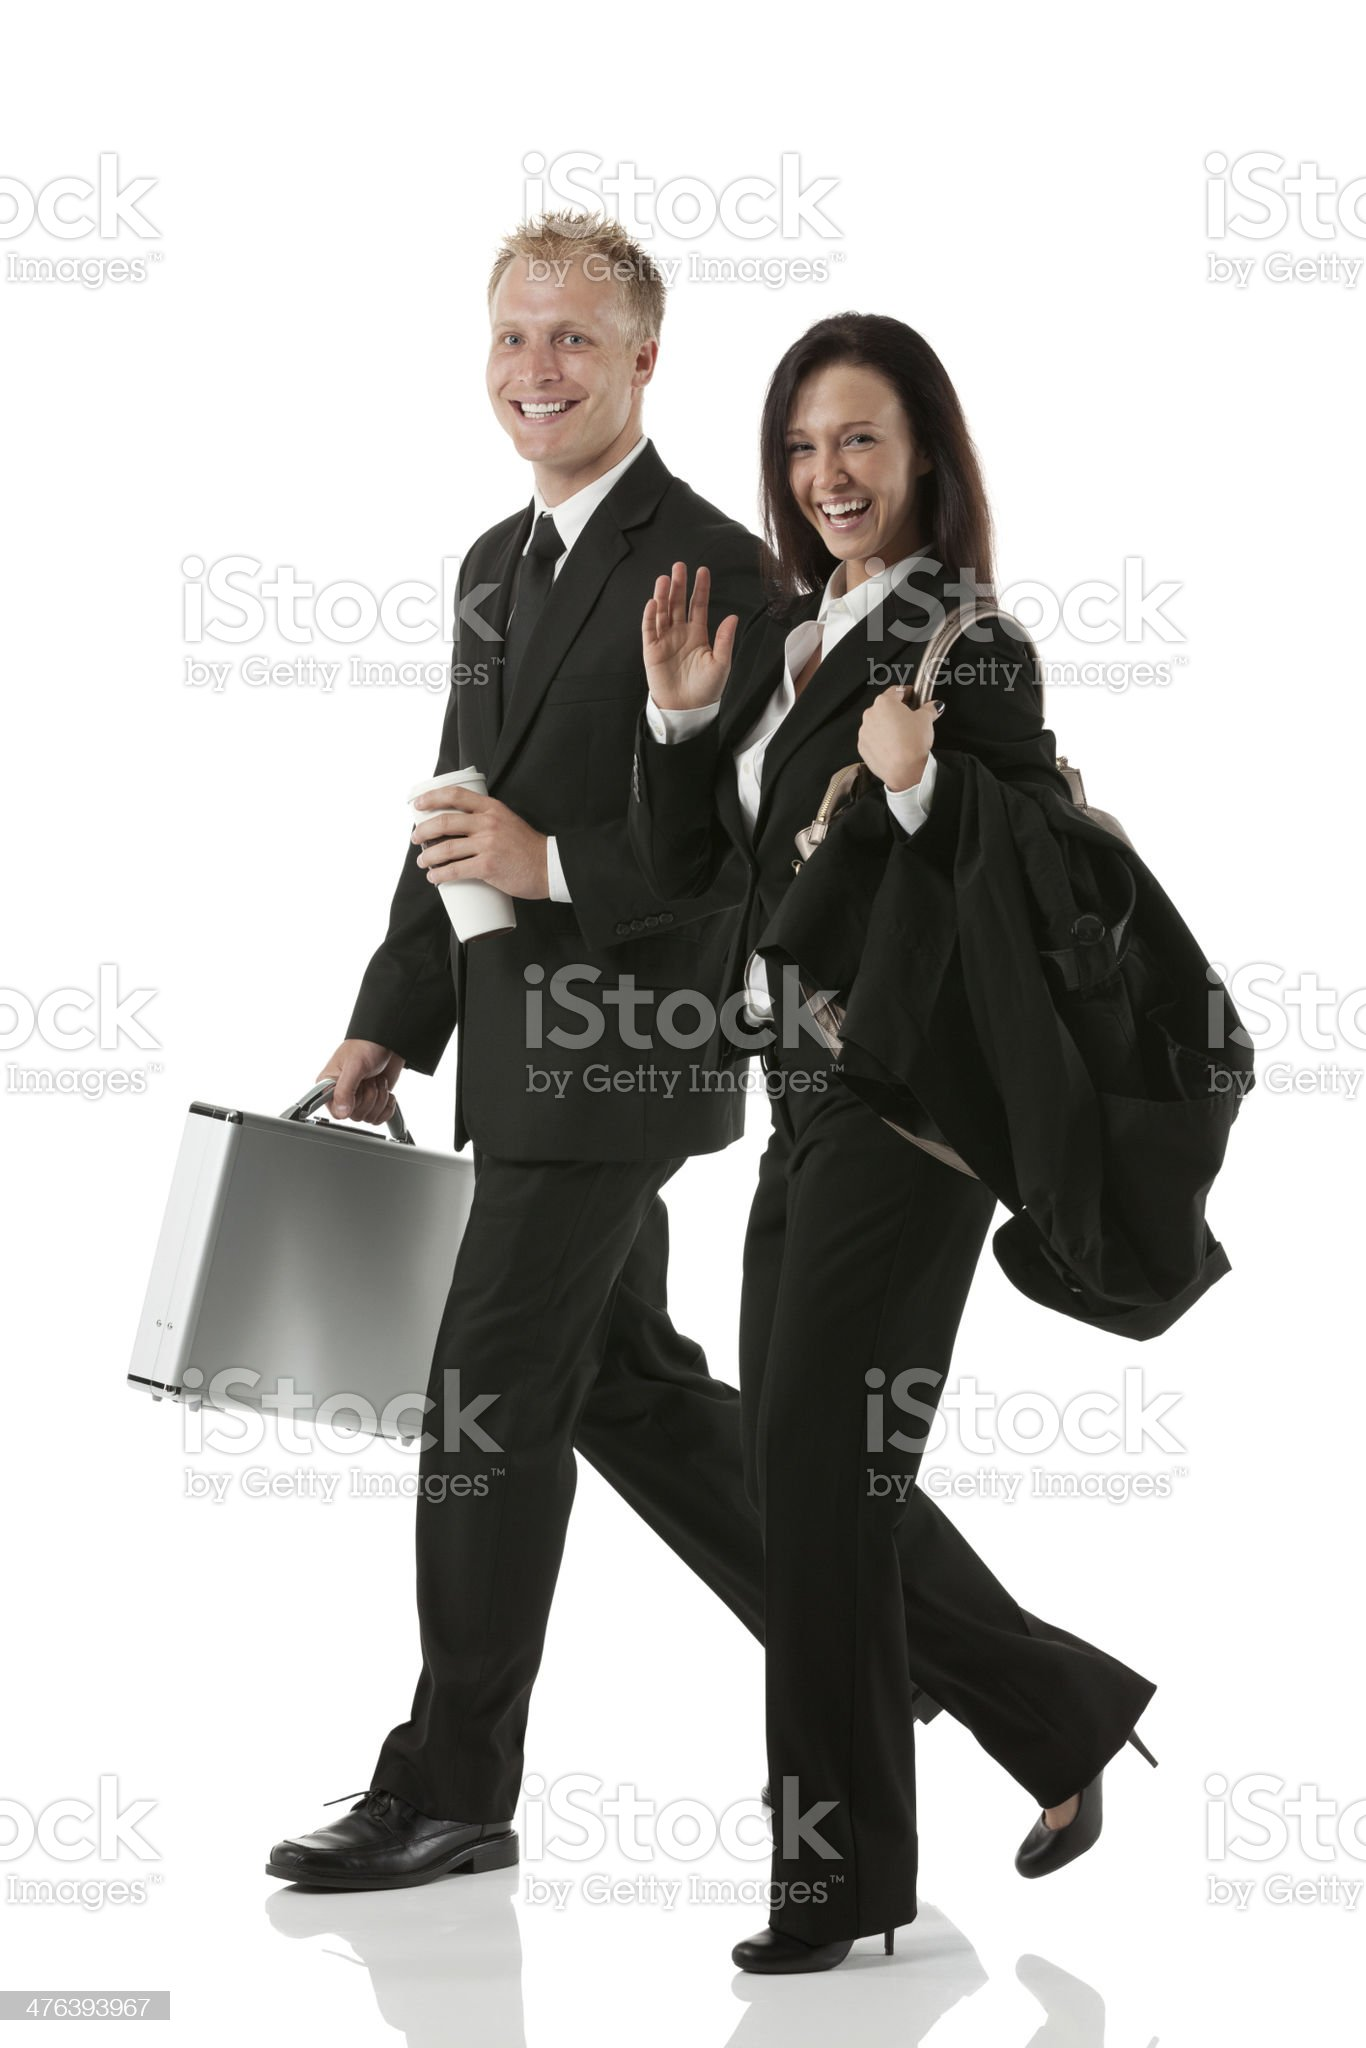 Business colleagues walking royalty-free stock photo